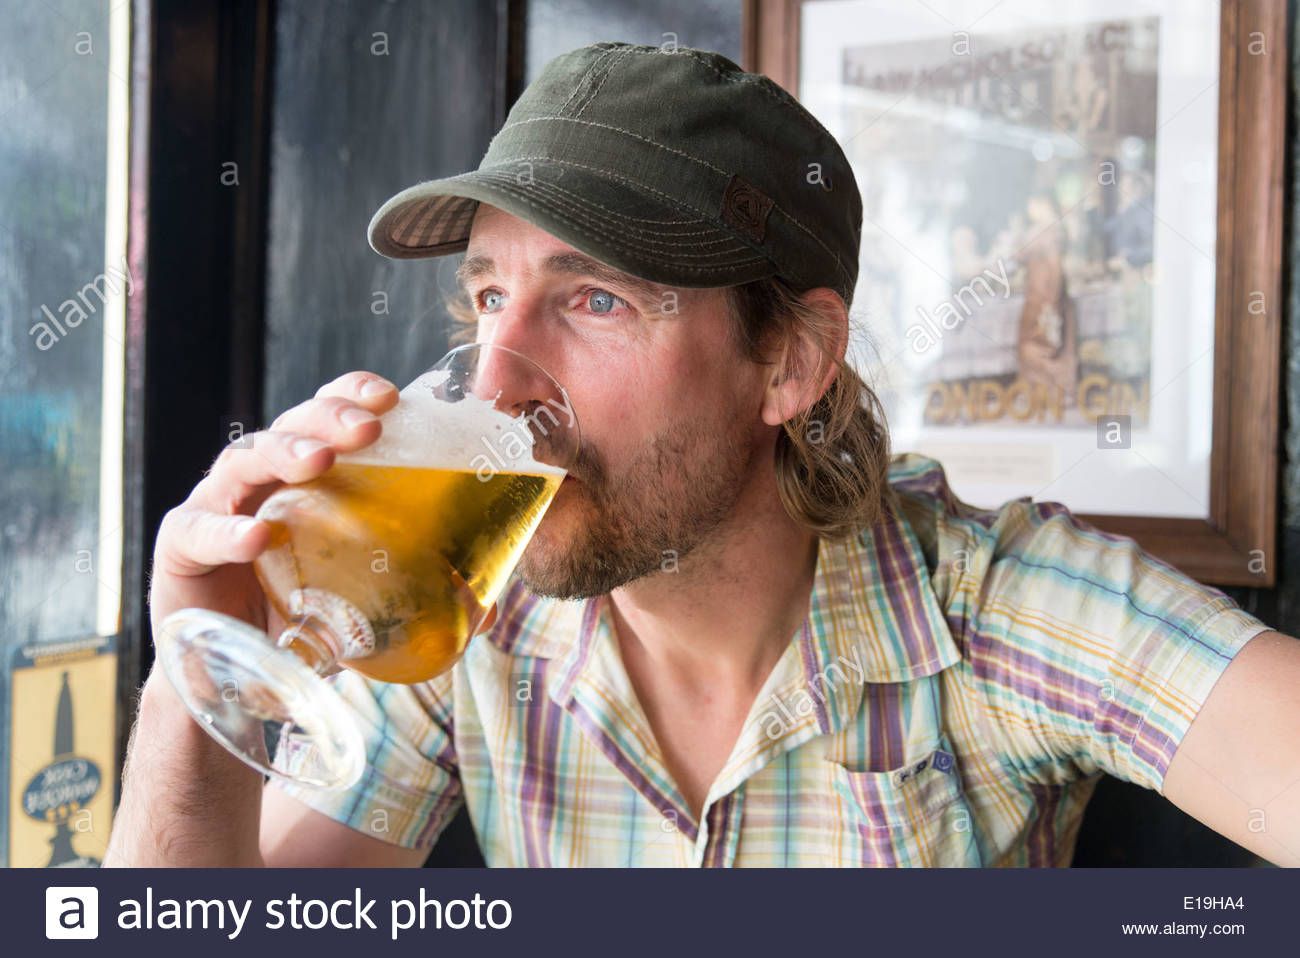 Man drinking pint of lager in pub, England, UK - Stock Image